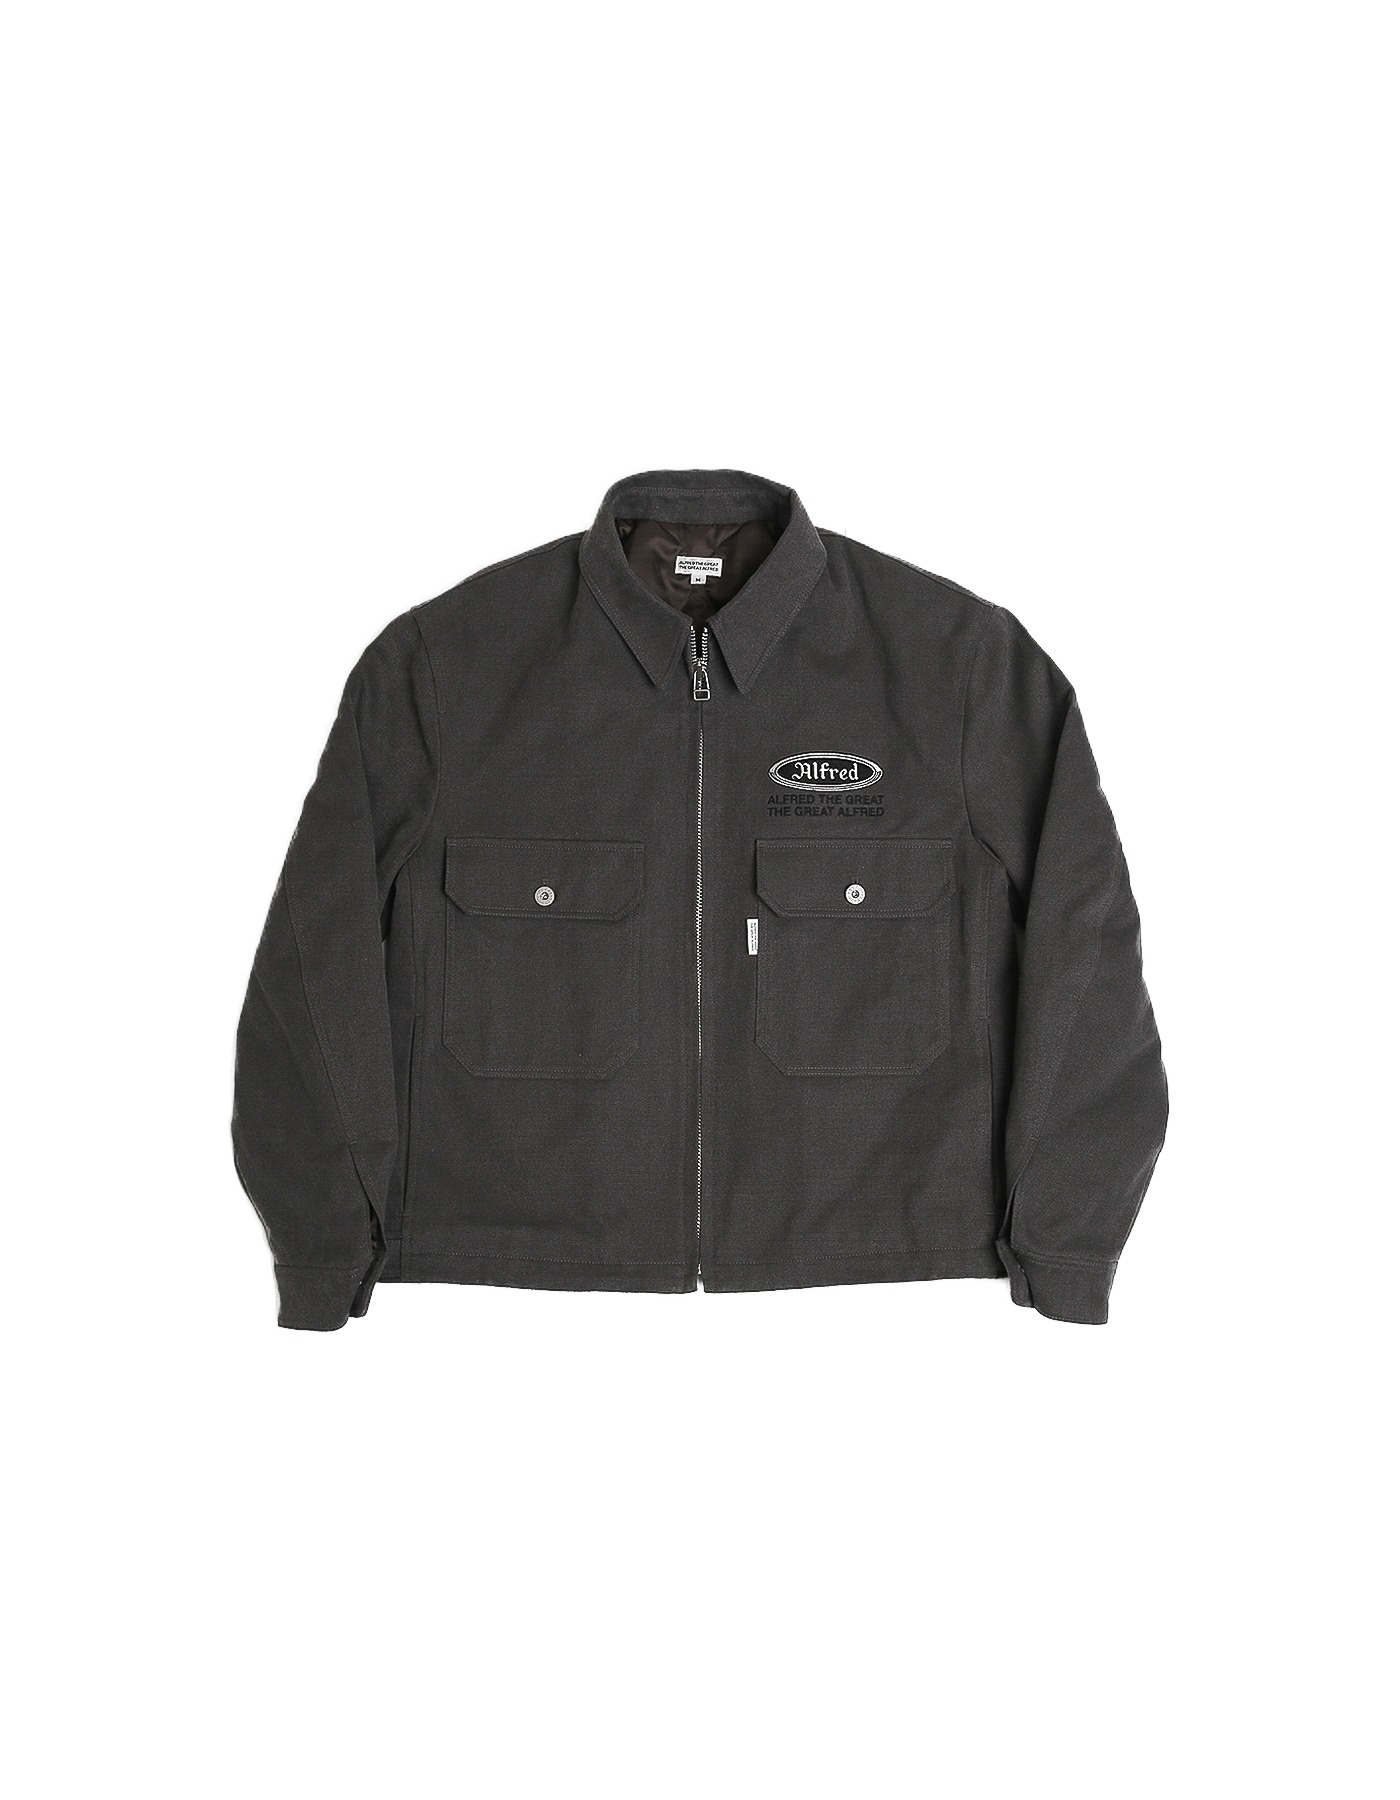 FRED MECHANIC JACKET / CHARCOAL